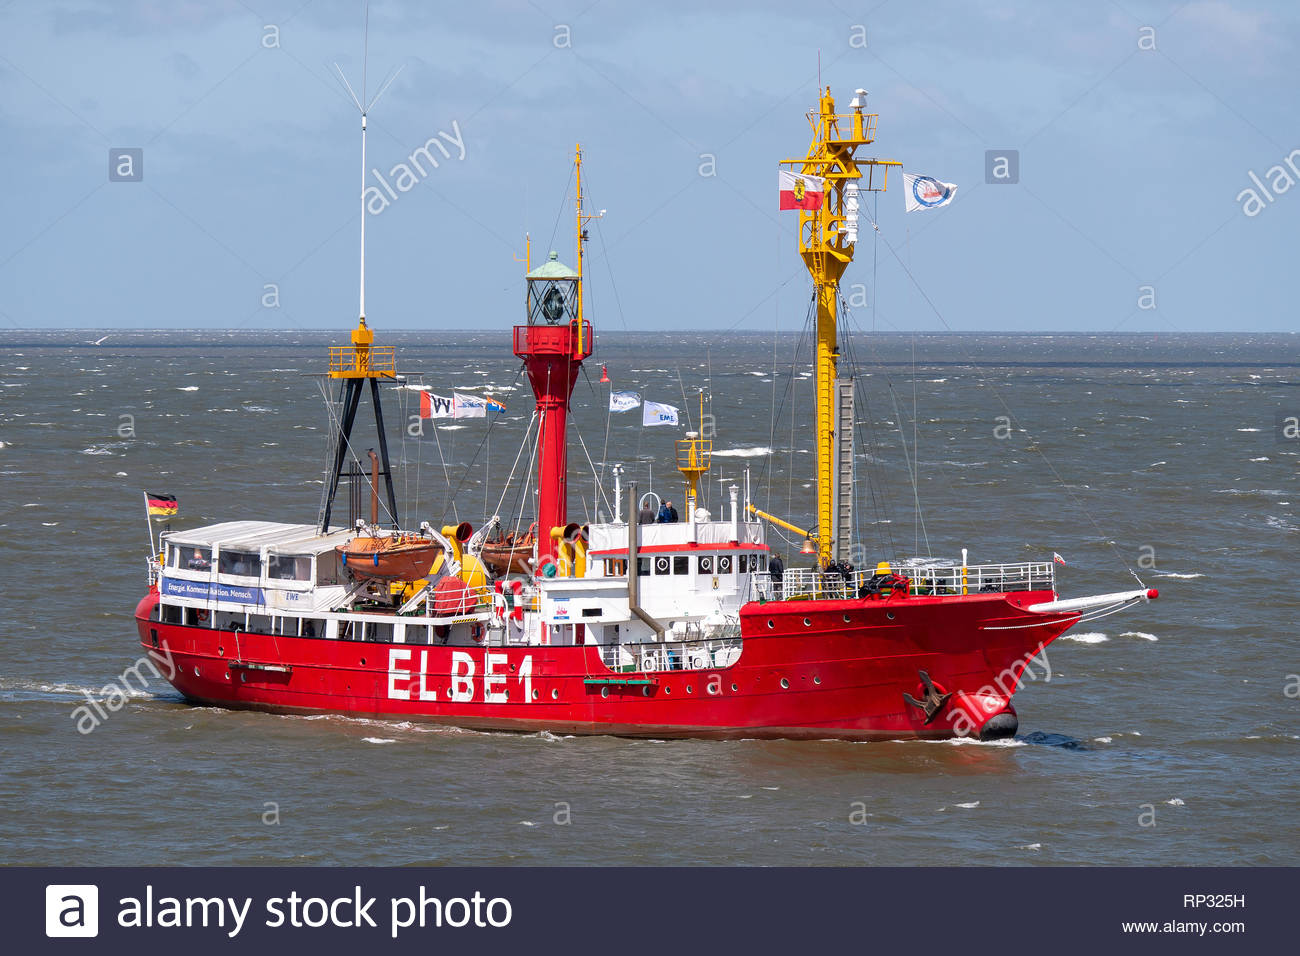 The lightvessel ELBE 1 BÜRGERMEISTER OSWALD sailing on the Elbe river passing Cuxhaven - Stock Image